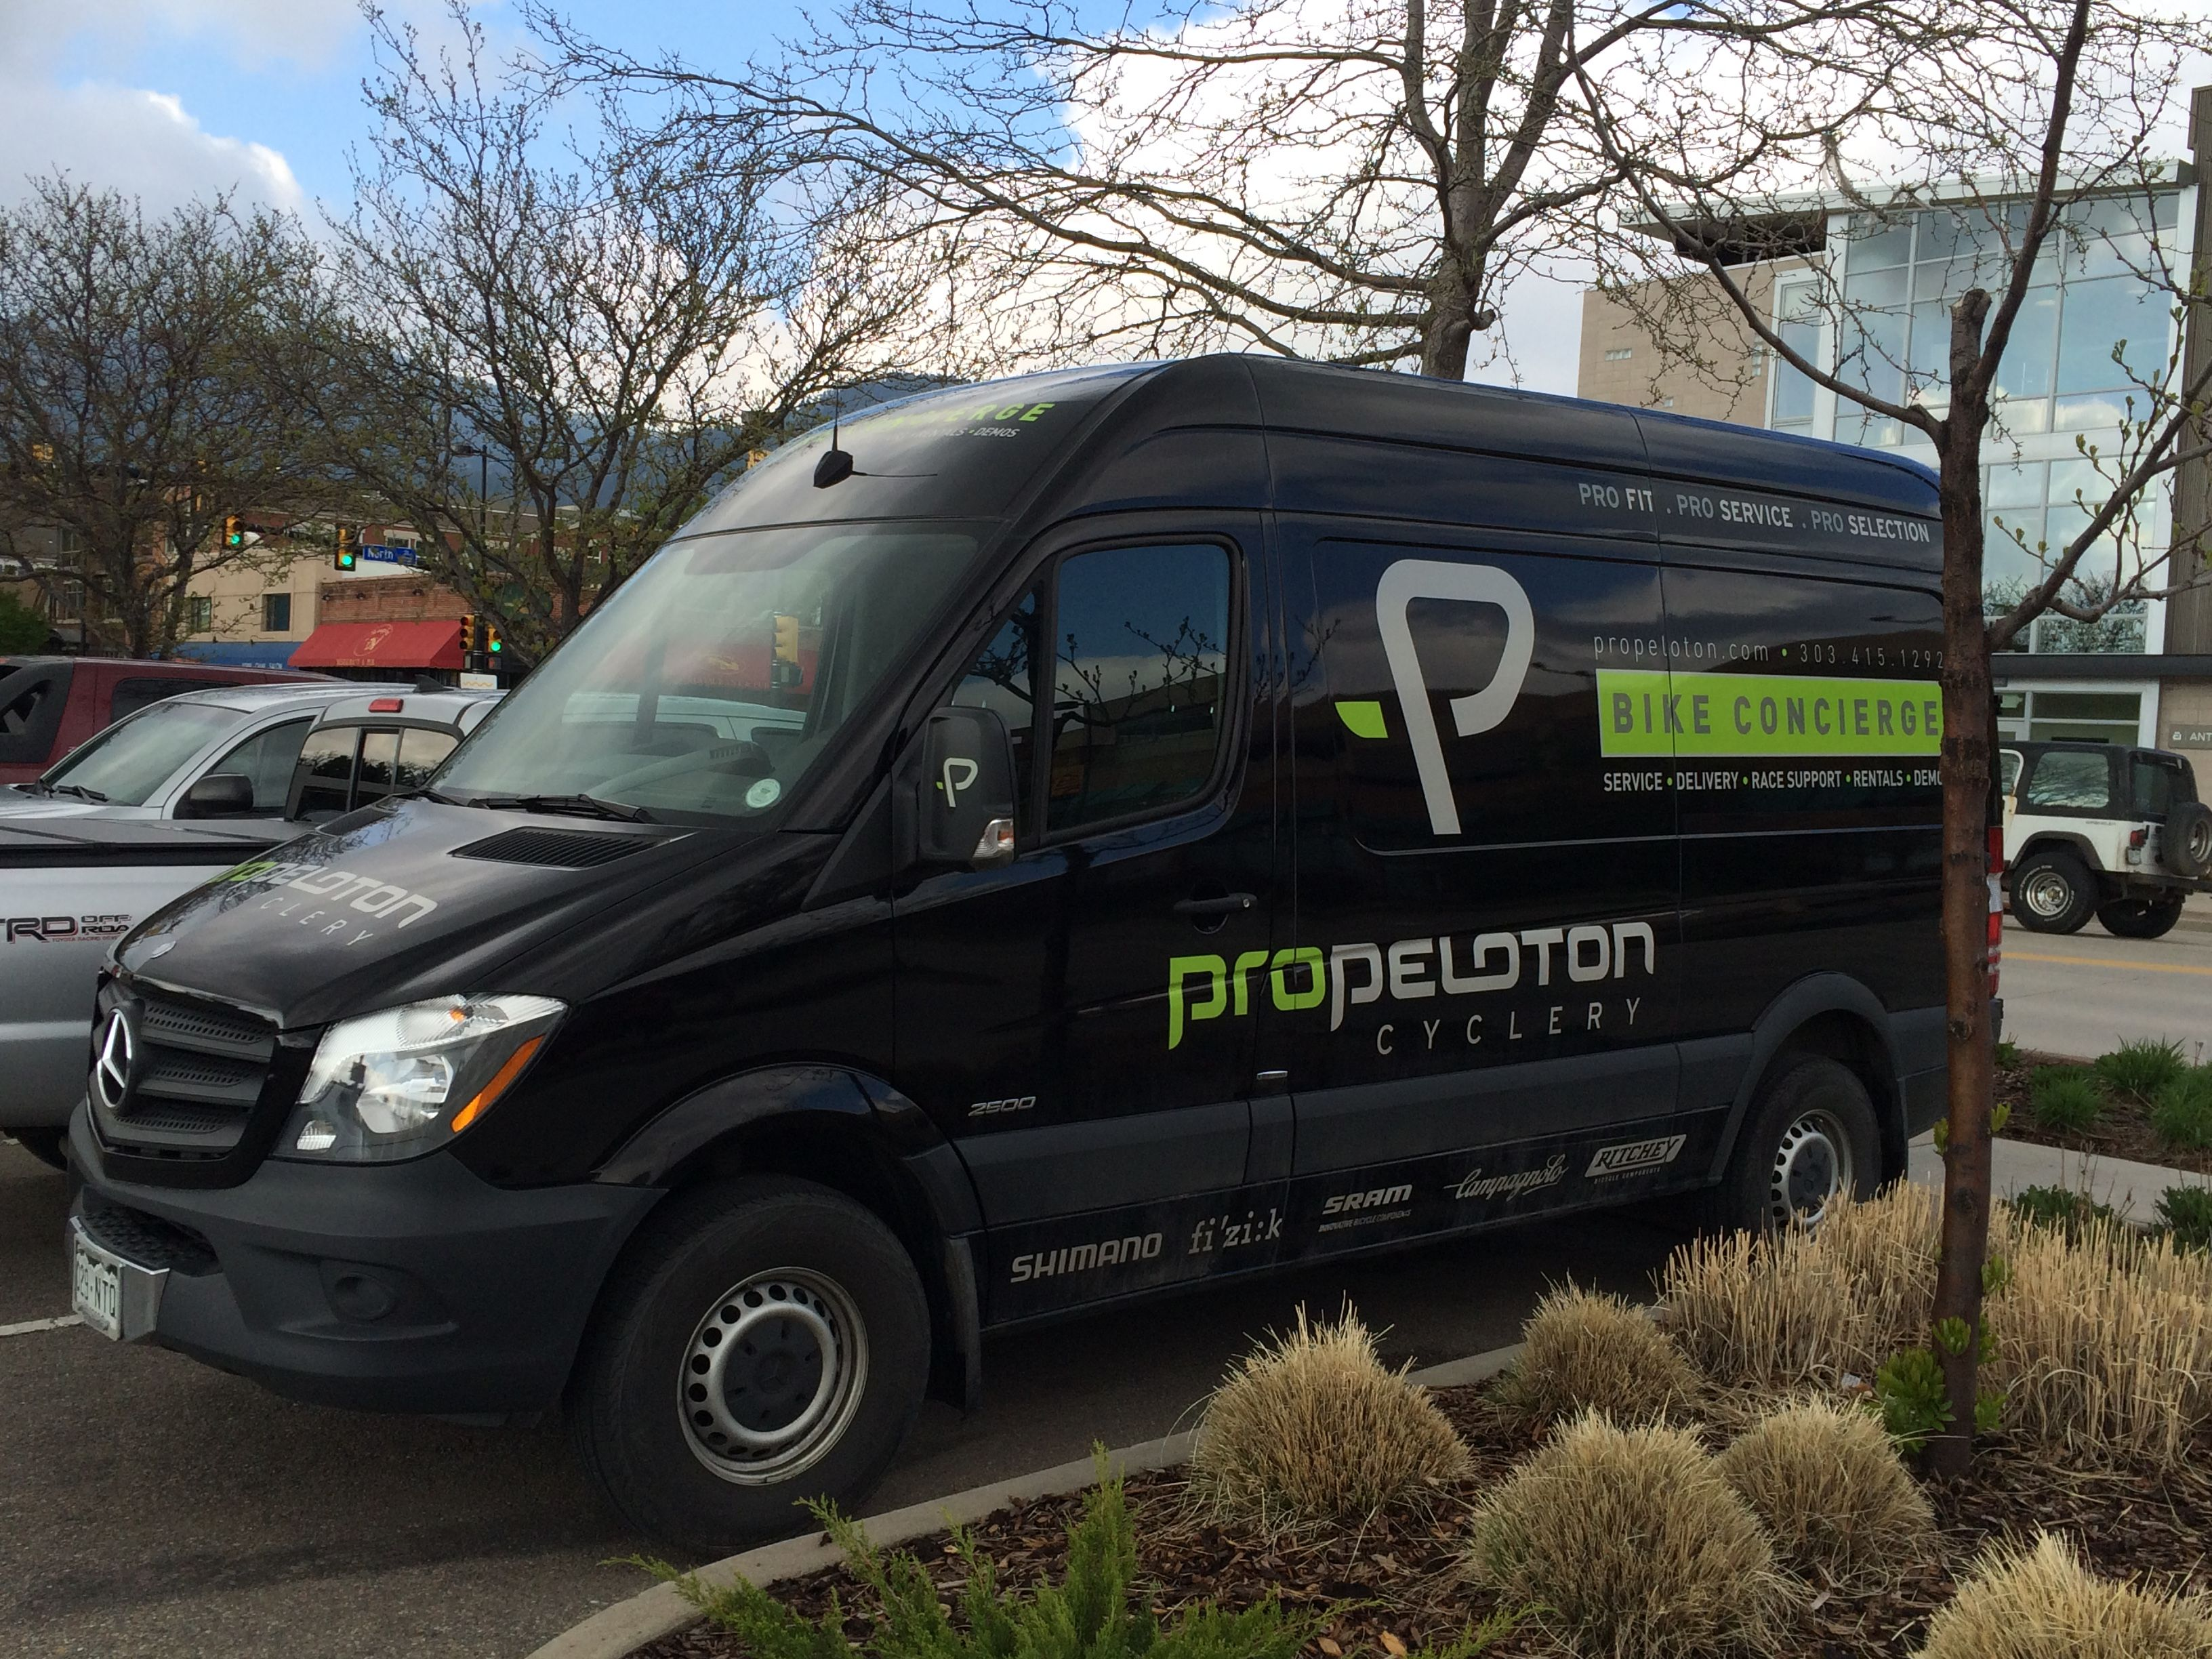 awnings barragan by mercedes sprinter pinterest van on awning bruno pin